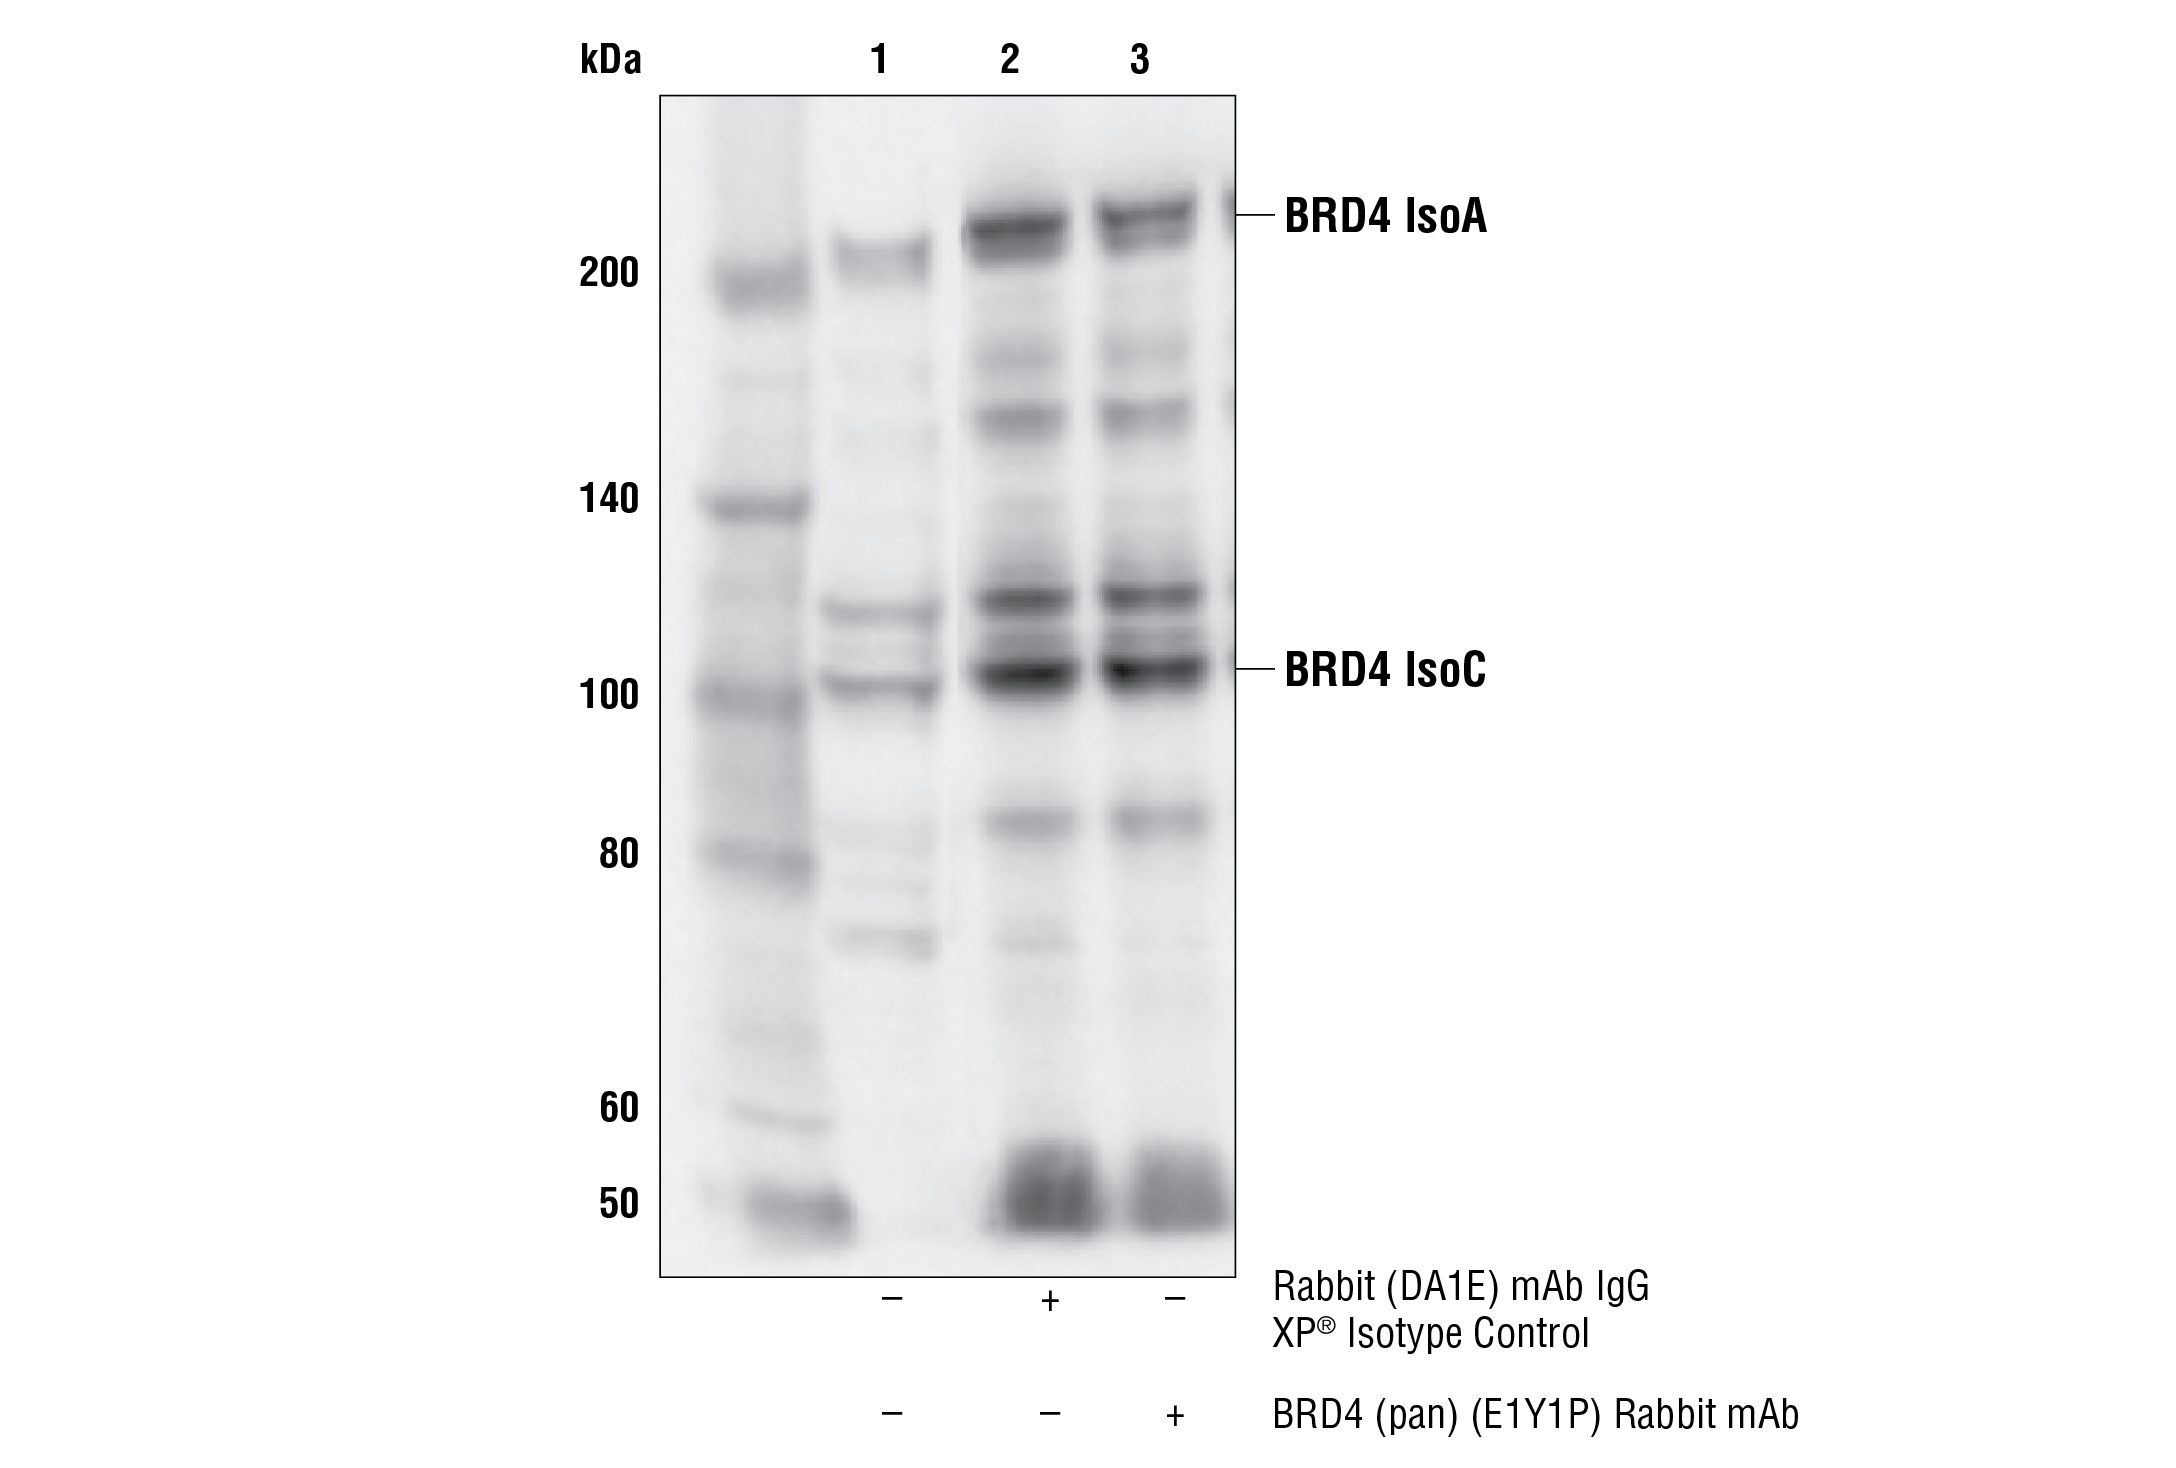 Immunoprecipitation Image 1: BRD4 (pan) (E1Y1P) Rabbit mAb